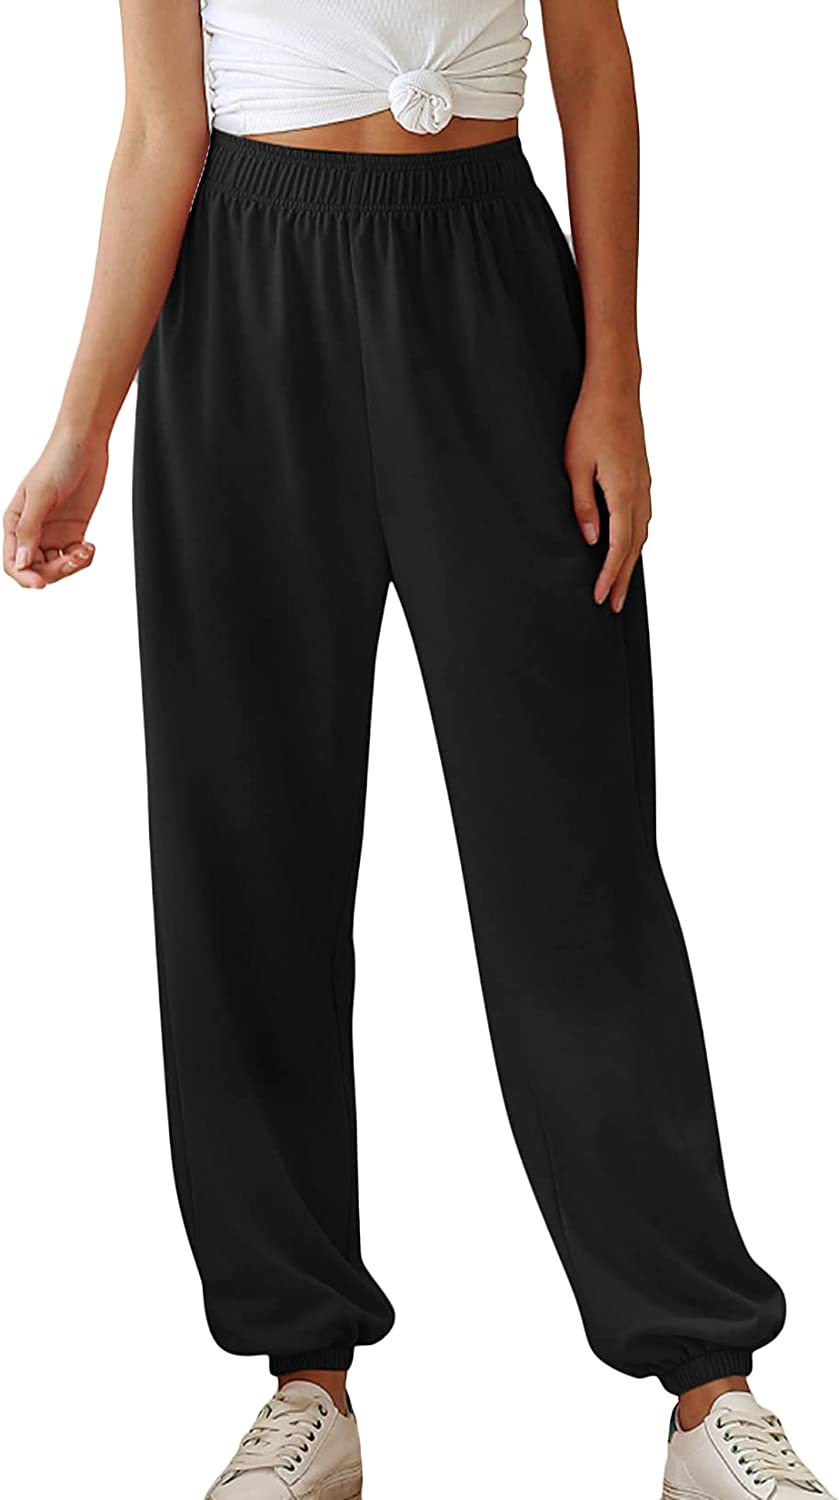 Lu's Chic Women's High Waisted Joggers Baggy Sweatpants Long Casual Active Loose Fit Pants